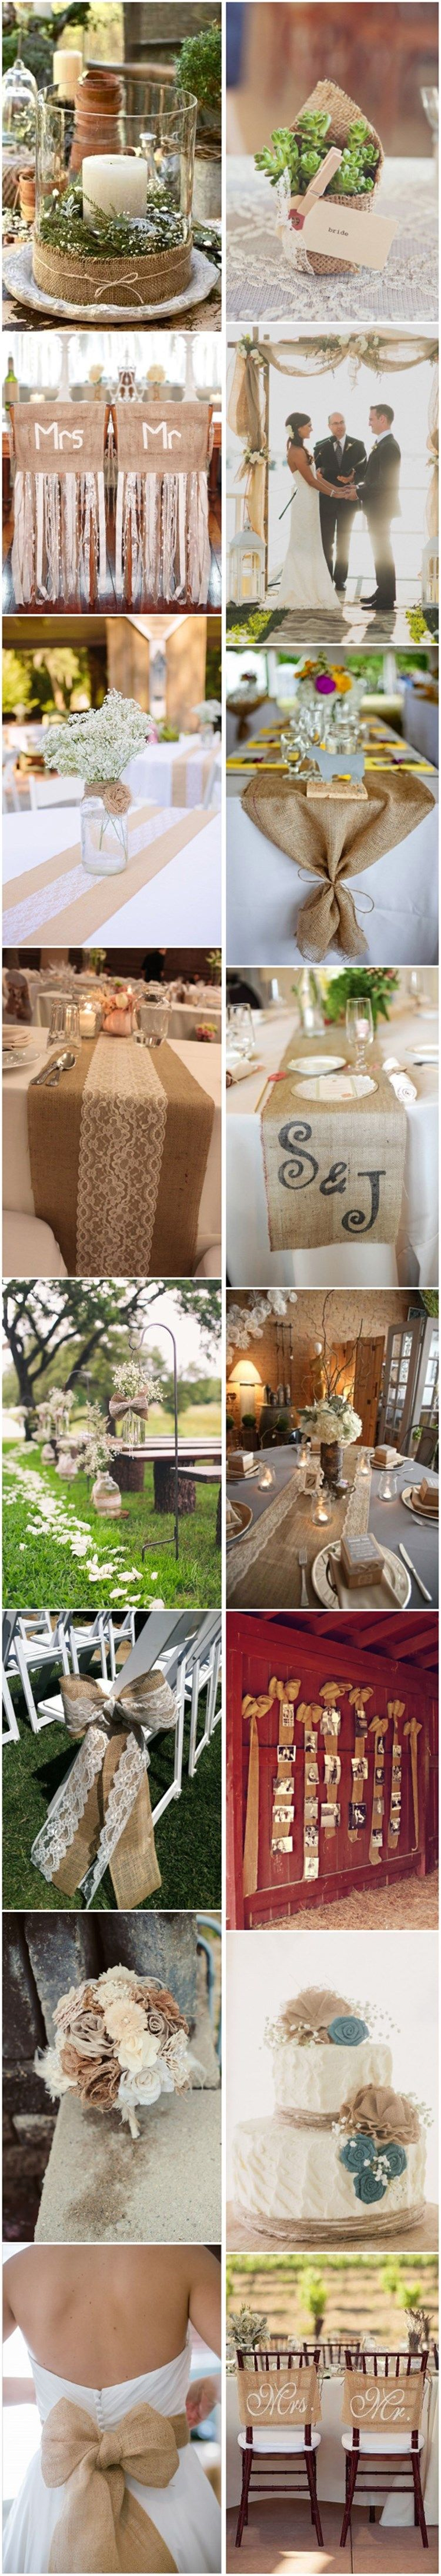 Wedding ideas rustic theme   ChicRustic Burlap and Lace Wedding Ideas  Lace weddings Burlap